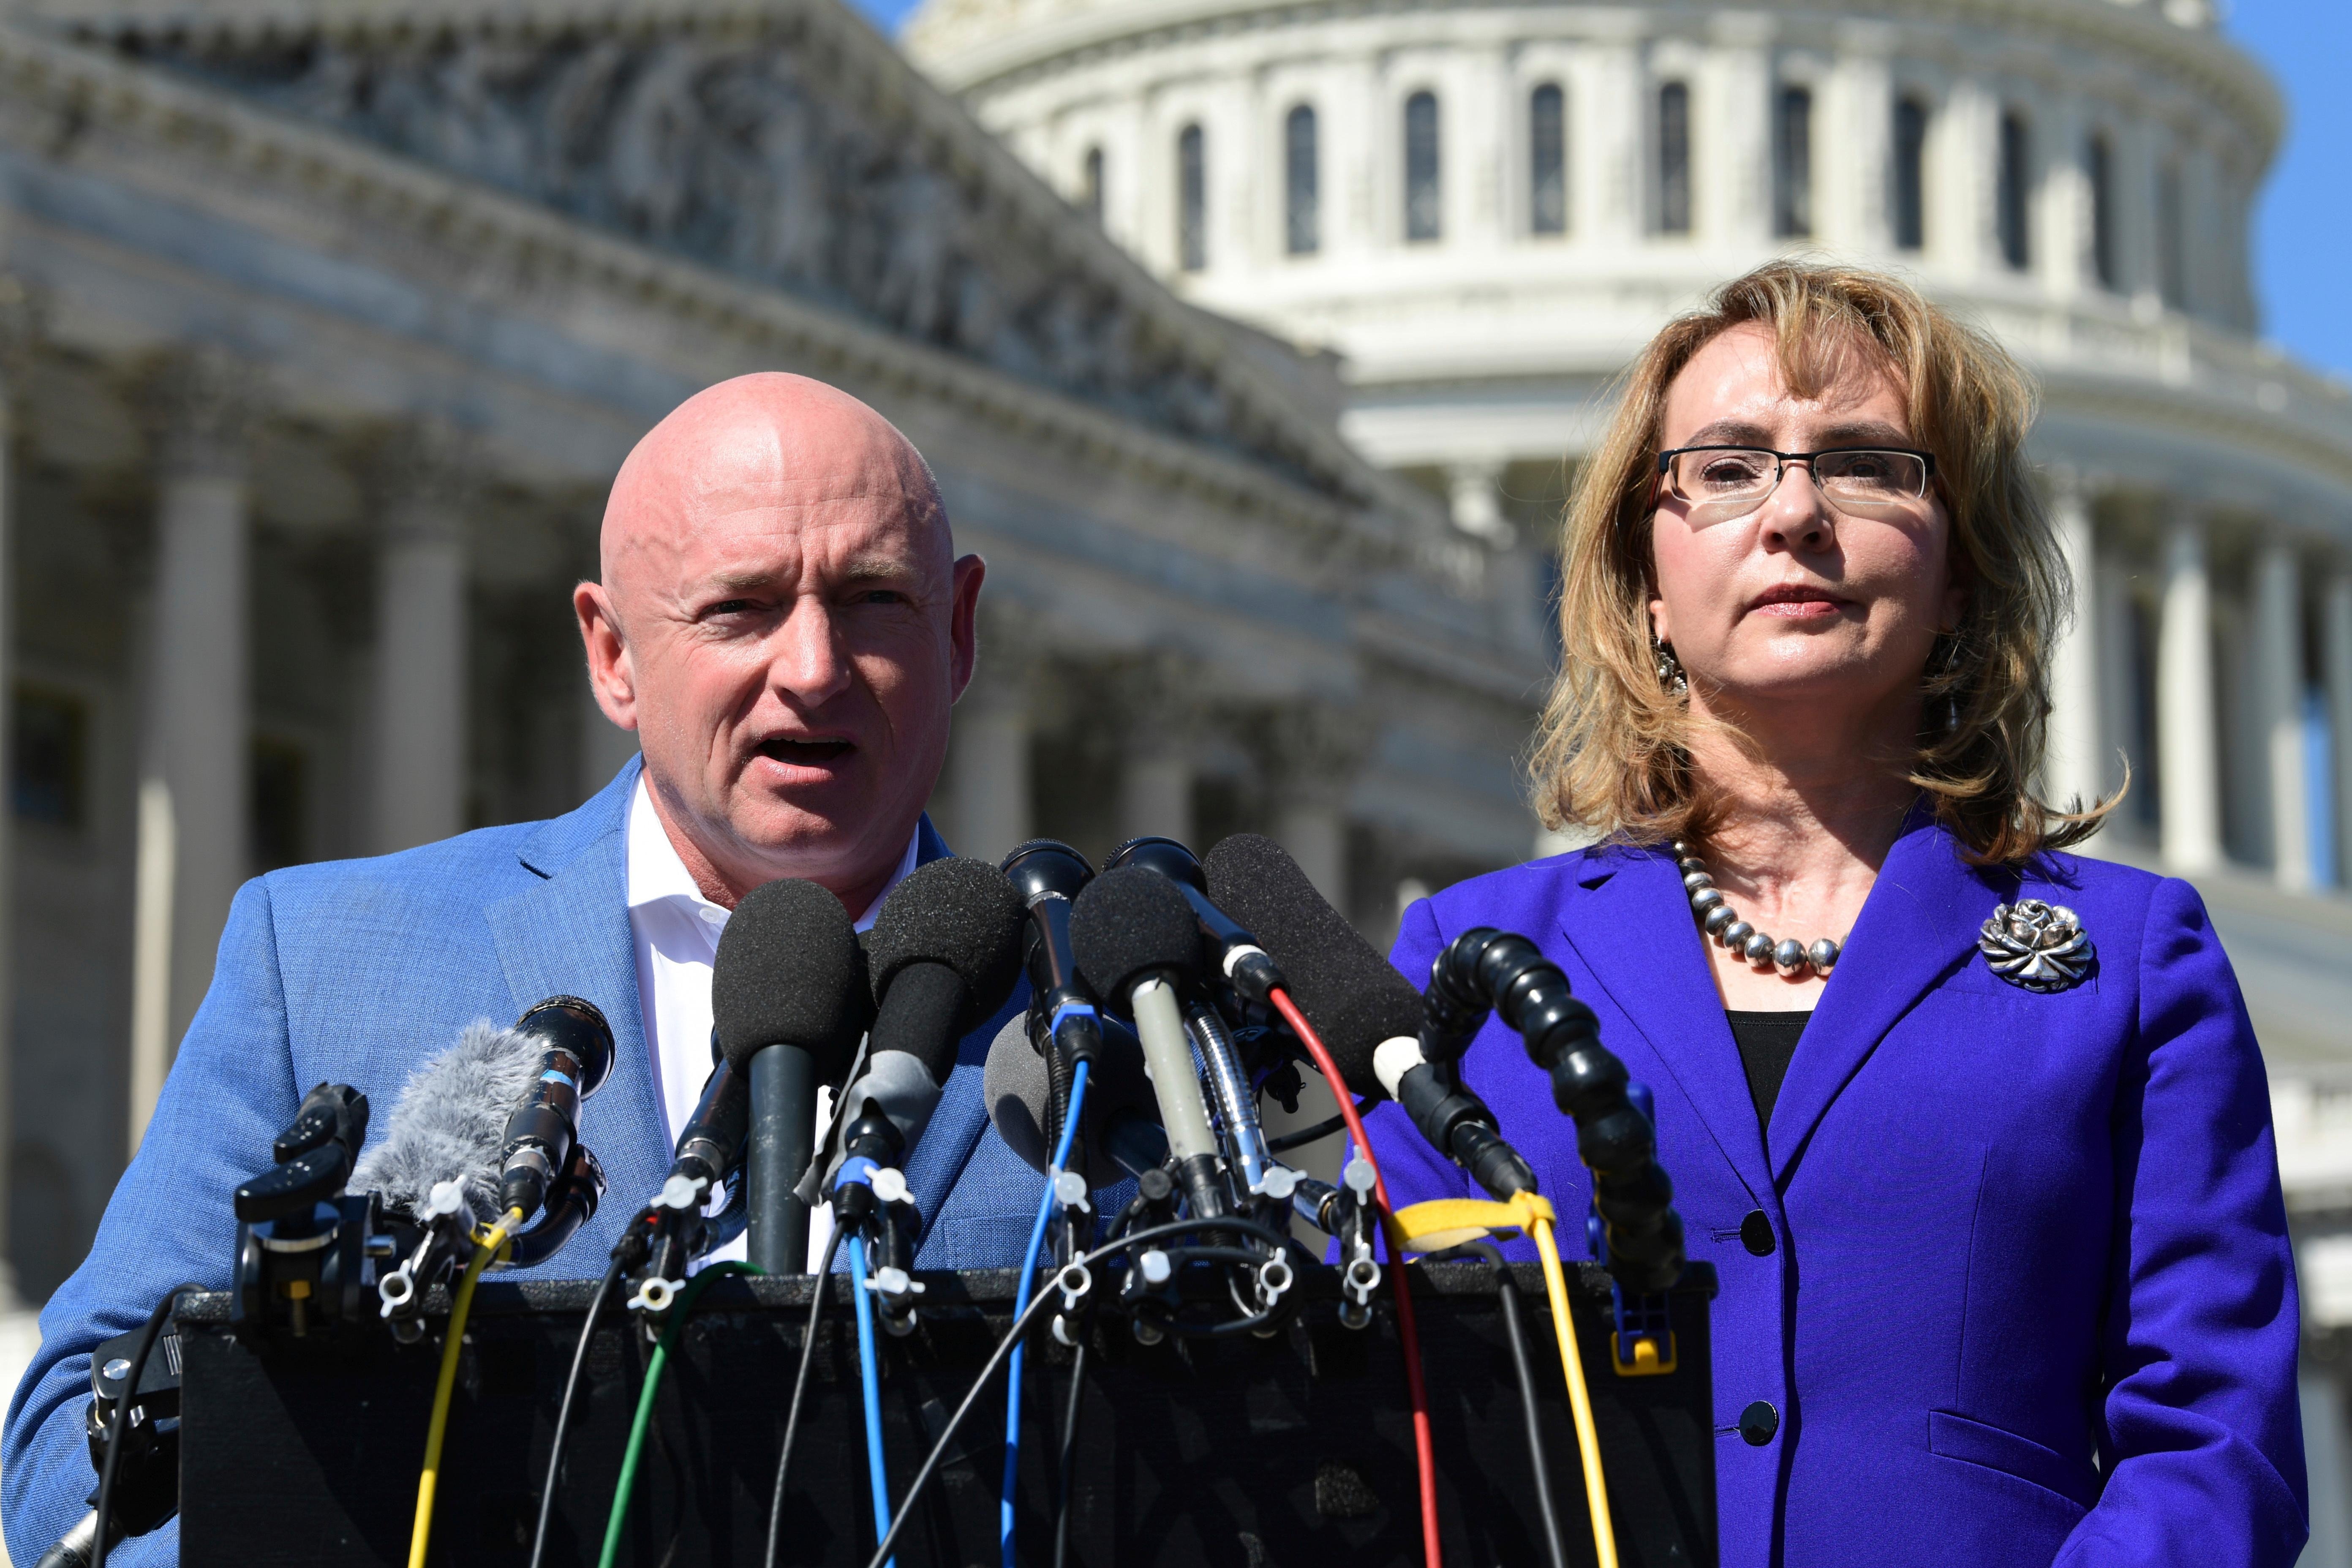 Former Rep. Gabrielle Giffords, D-Ariz., right, listens as her husband Mark Kelly, left, speaks on Capitol Hill in Washington, Monday, Oct. 2, 2017, about the mass shooting in Las Vegas. Giffords, was a congresswoman when she was shot in an assassination attempt in 2011. (AP Photo/Susan Walsh)